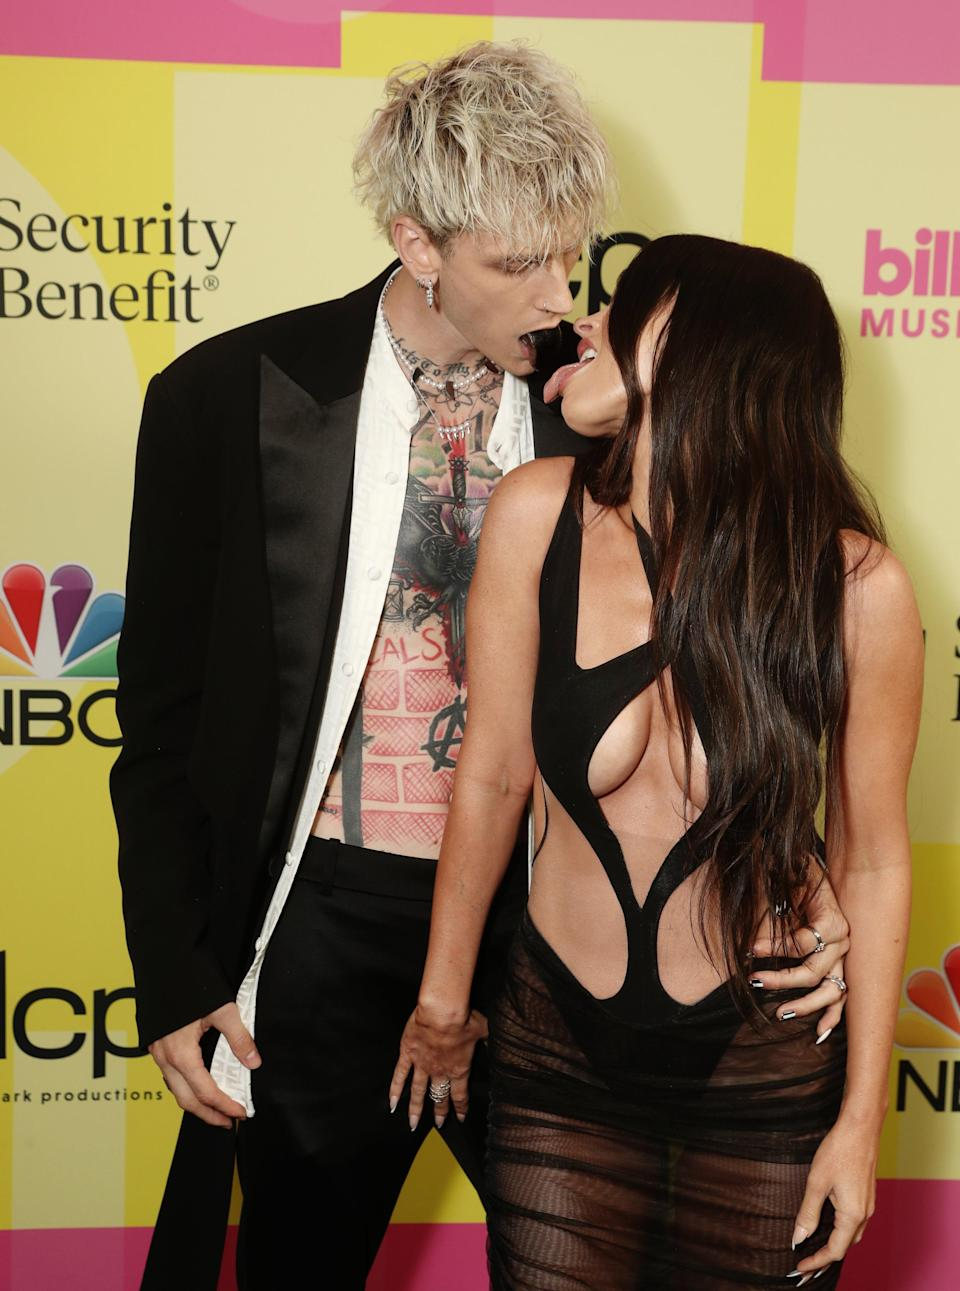 Can't keep my hands to myself: Megan Fox and Machine Gun Kelly (NBCU Photo Bank via Getty Images)